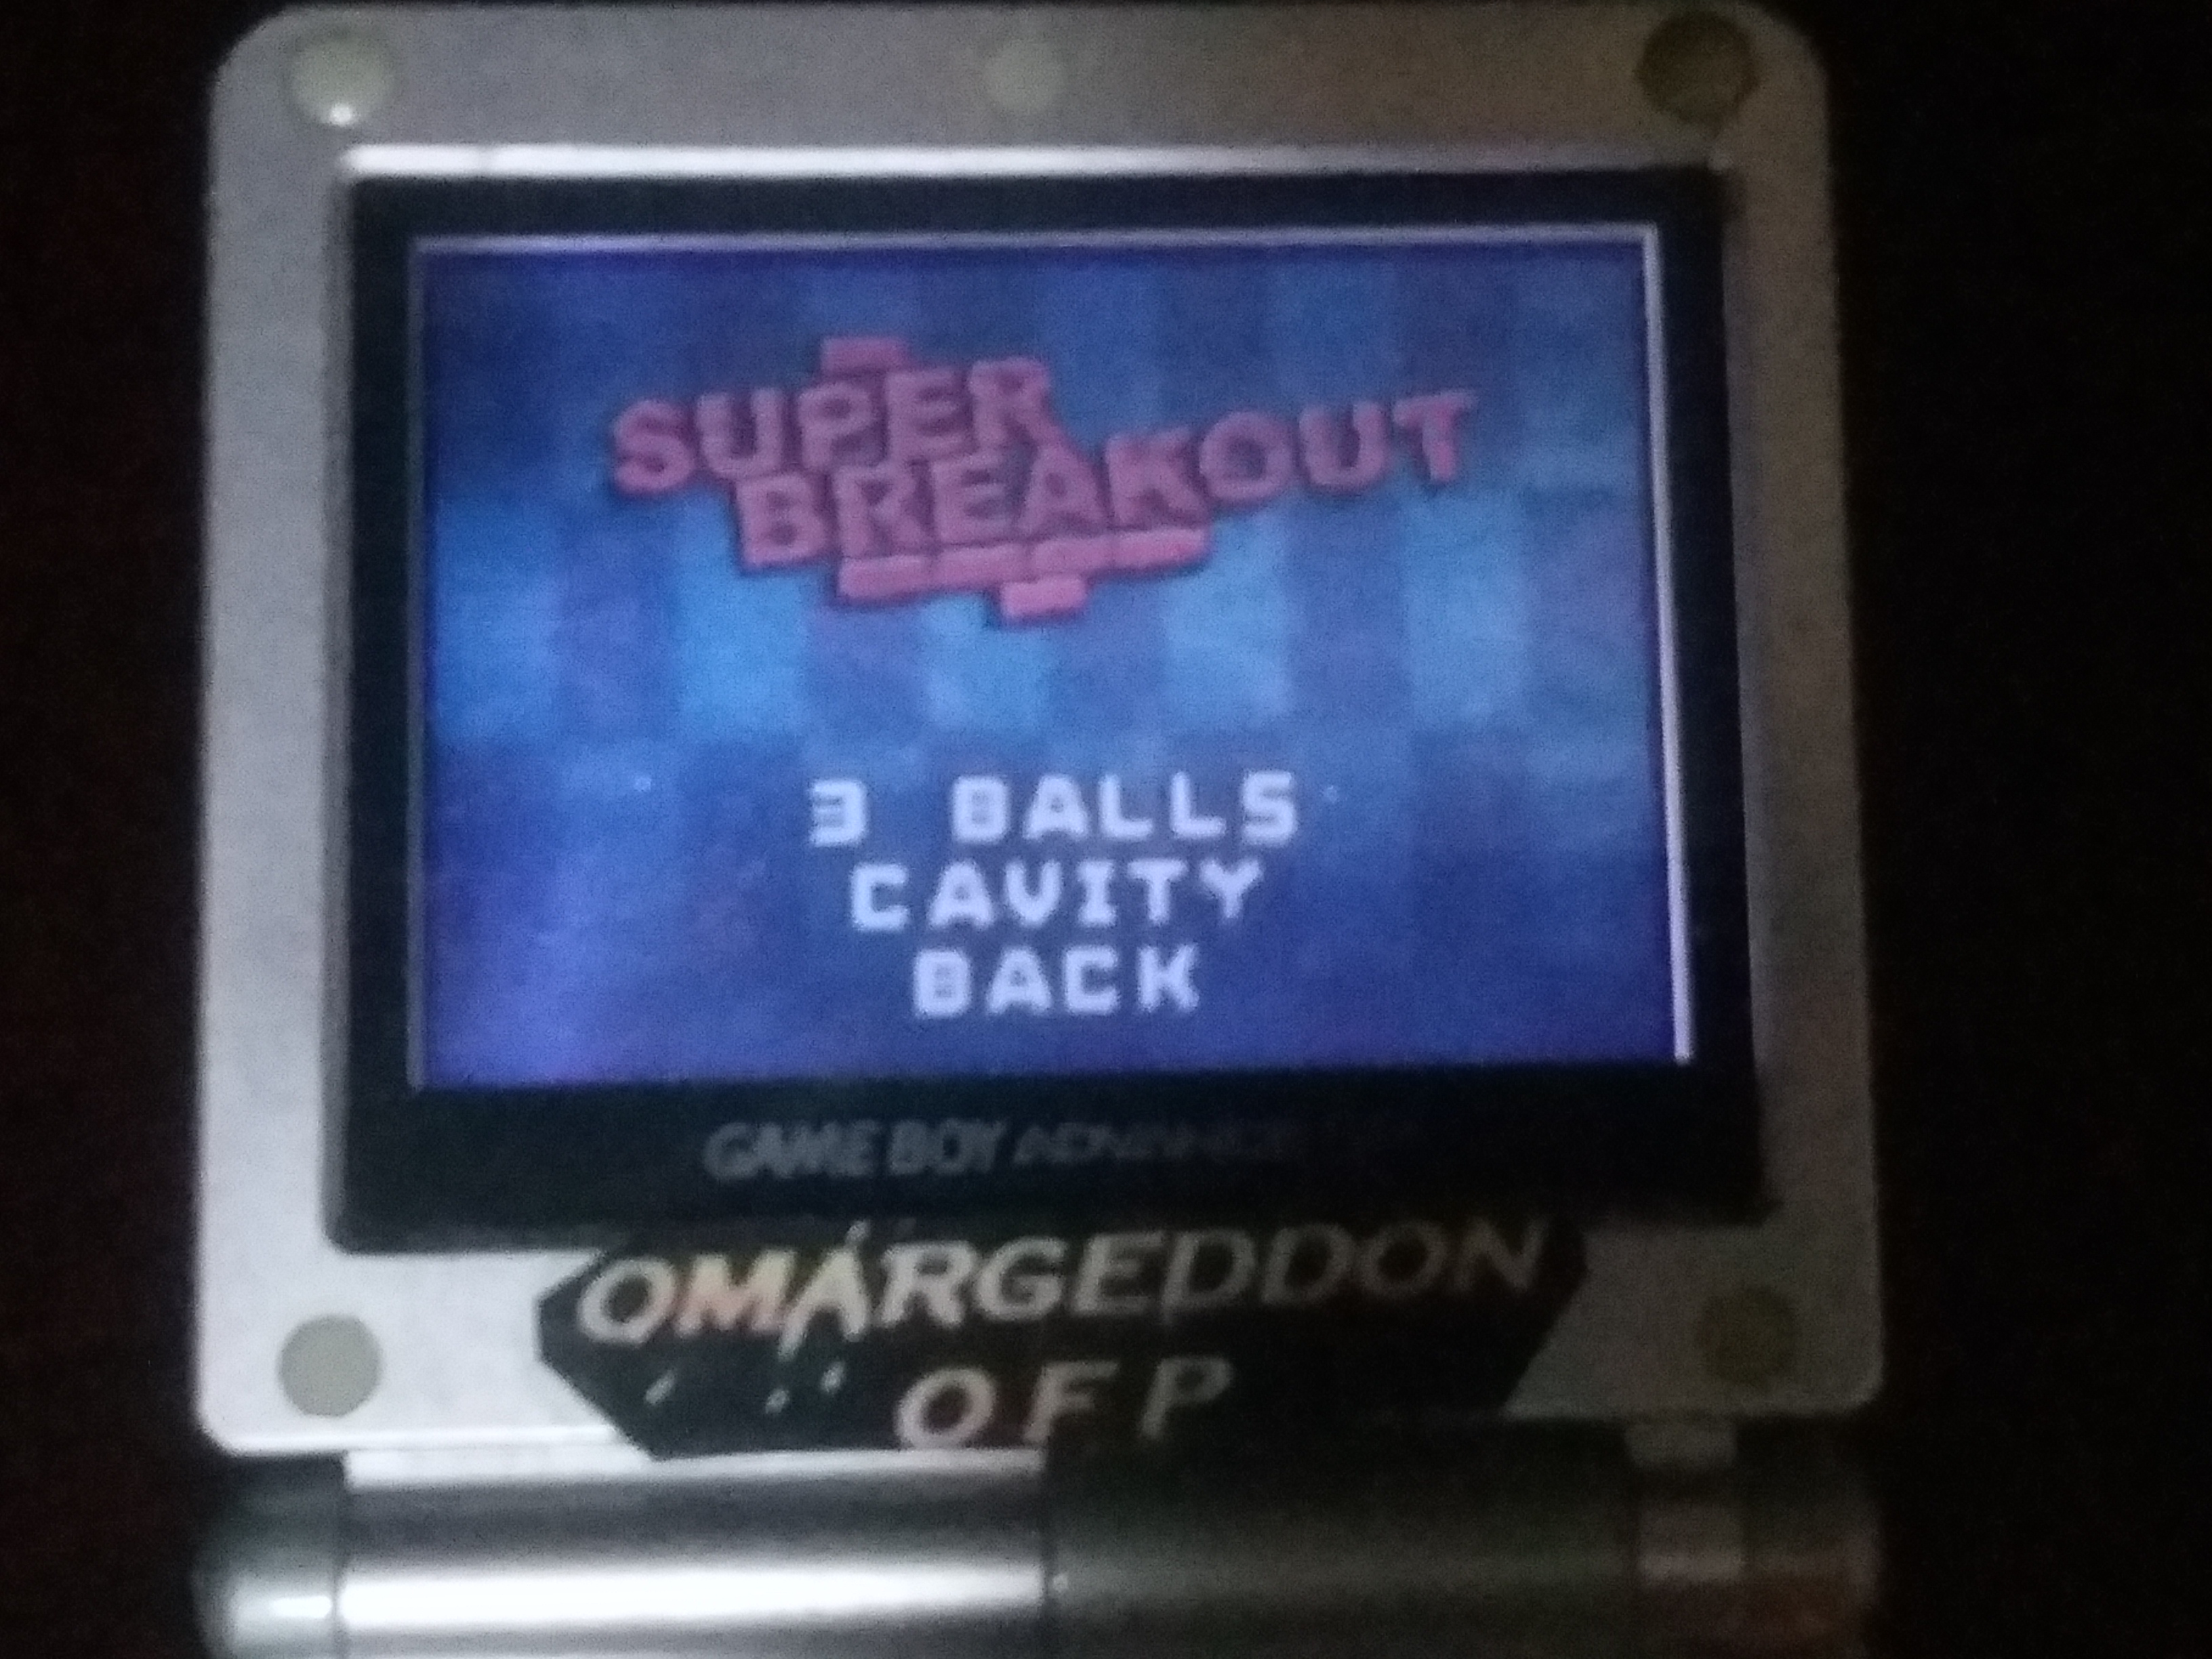 omargeddon: Super Breakout (GBA) 167 points on 2018-04-25 19:36:36